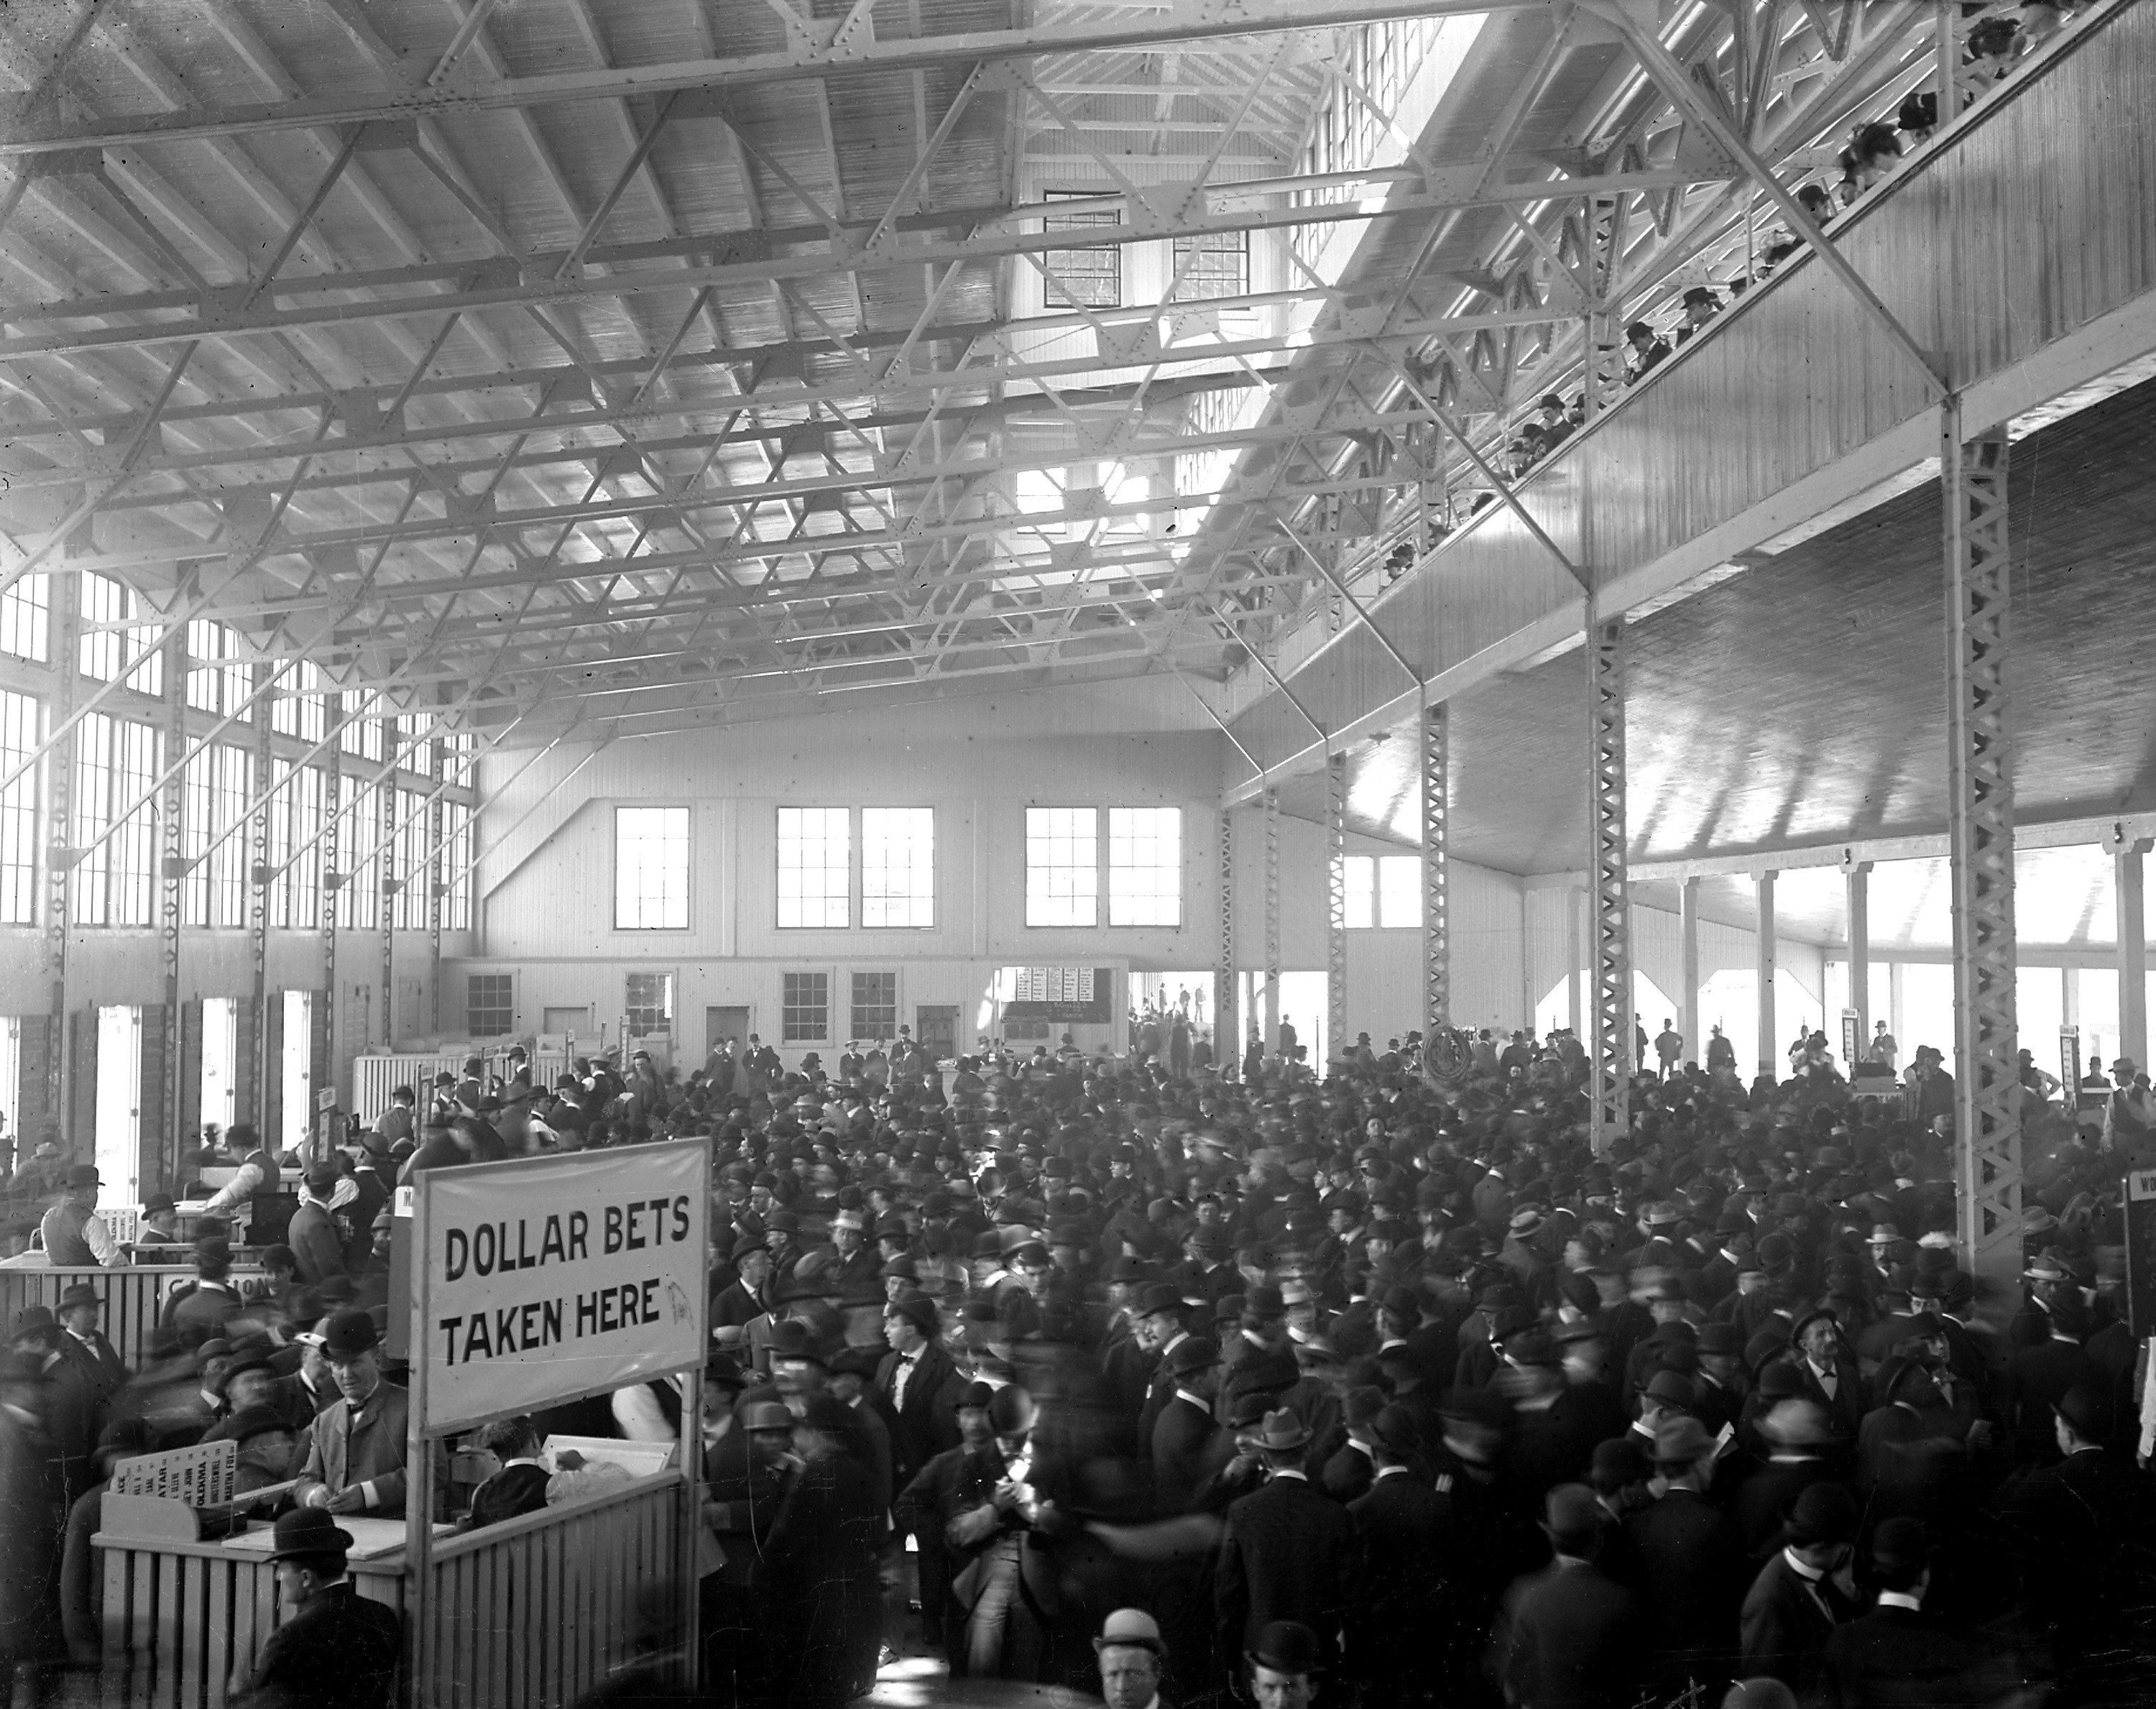 Betting Shed at Benning Race Track in DC. The Prospect Park track would have been smaller than this, but the commotion was similar. Courtesy of Keeneland Library Cook Collection.